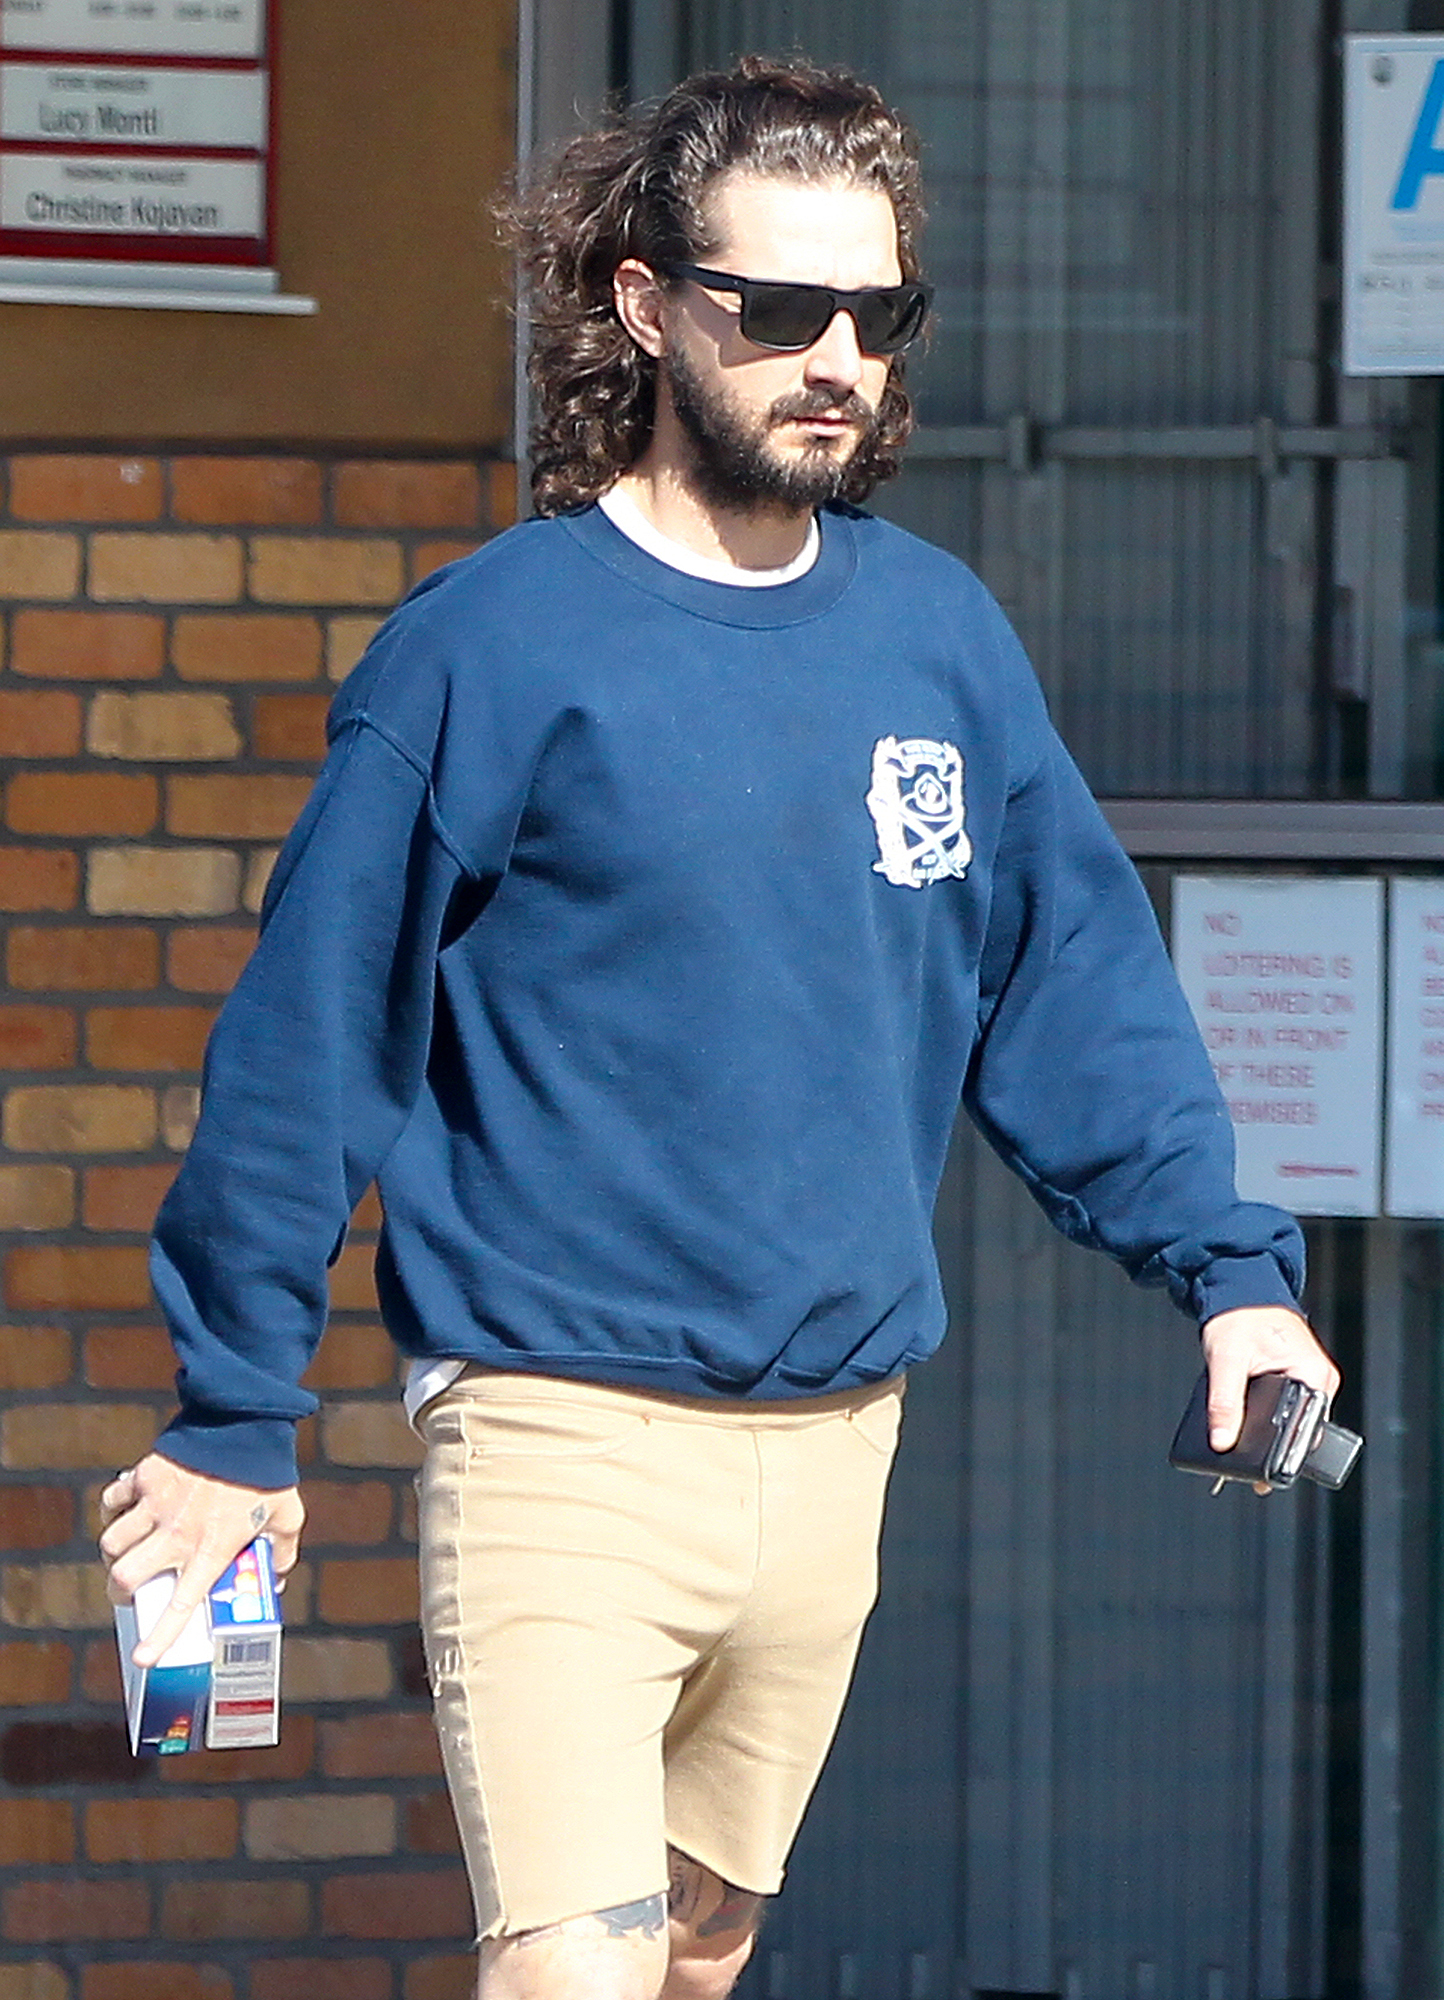 EXCLUSIVE: Shia quits LaPuff! Actor and artist Shia LaBeouf photographed purchasing two boxes of NicoDerm patches, the smoking deterrent that helps people to quit smoking, from a CVS store in Los Angeles